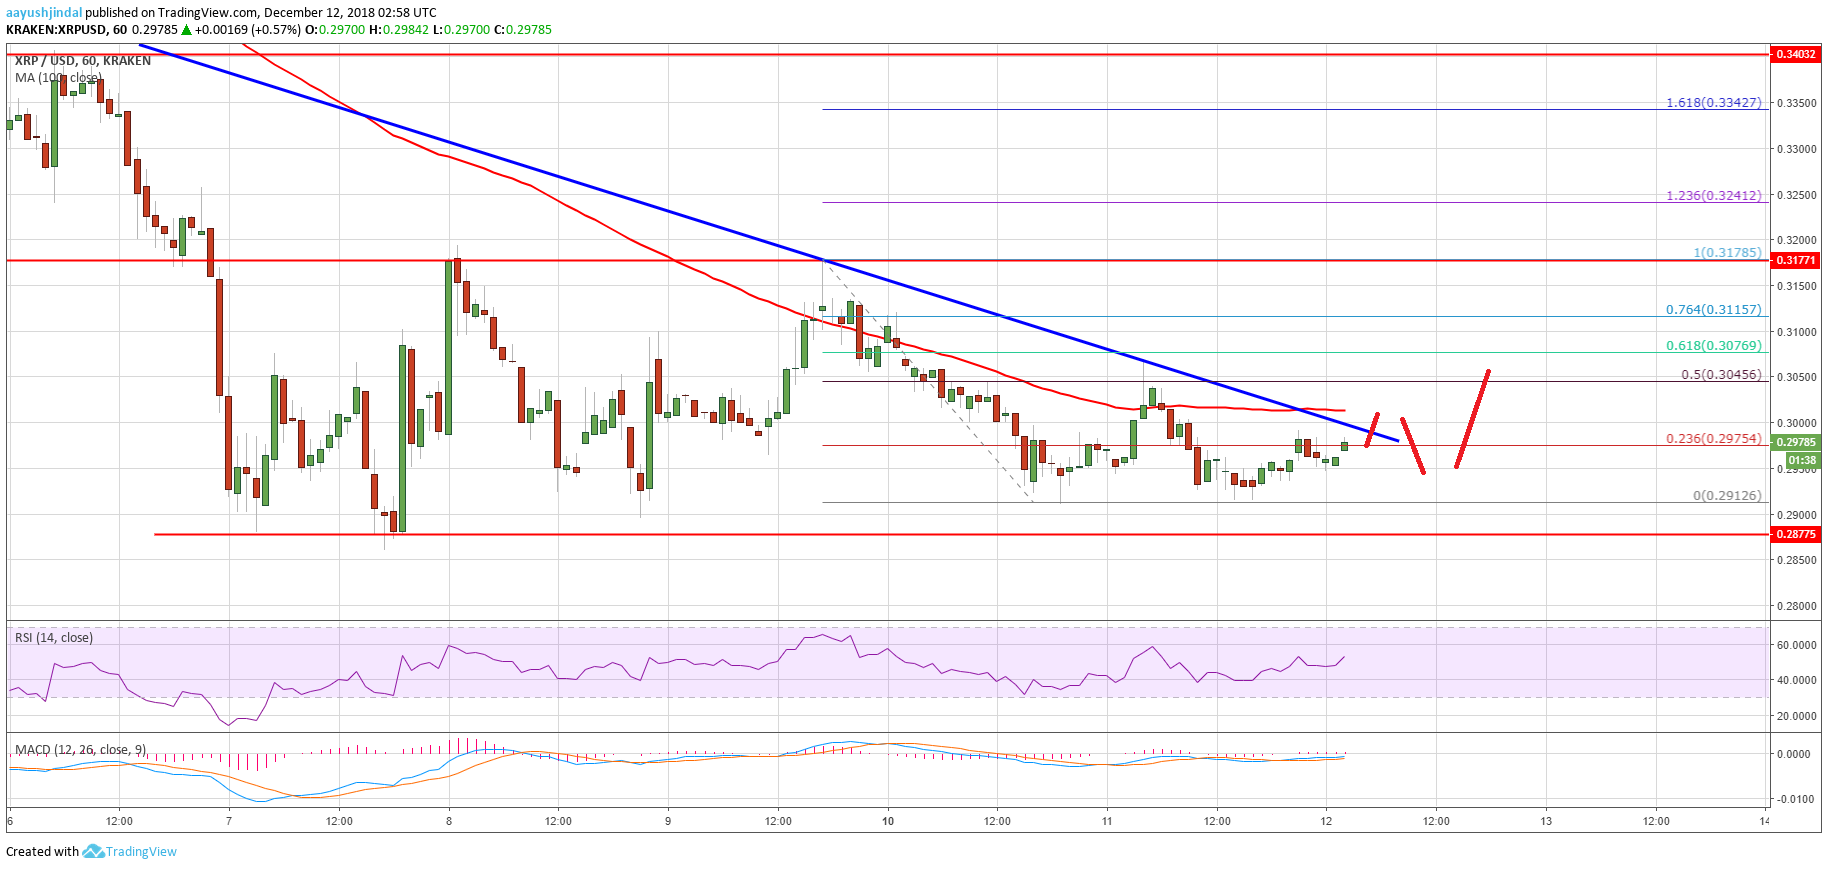 Ripple Price Analysis: Break Above 100 SMA Could Push XRP Higher